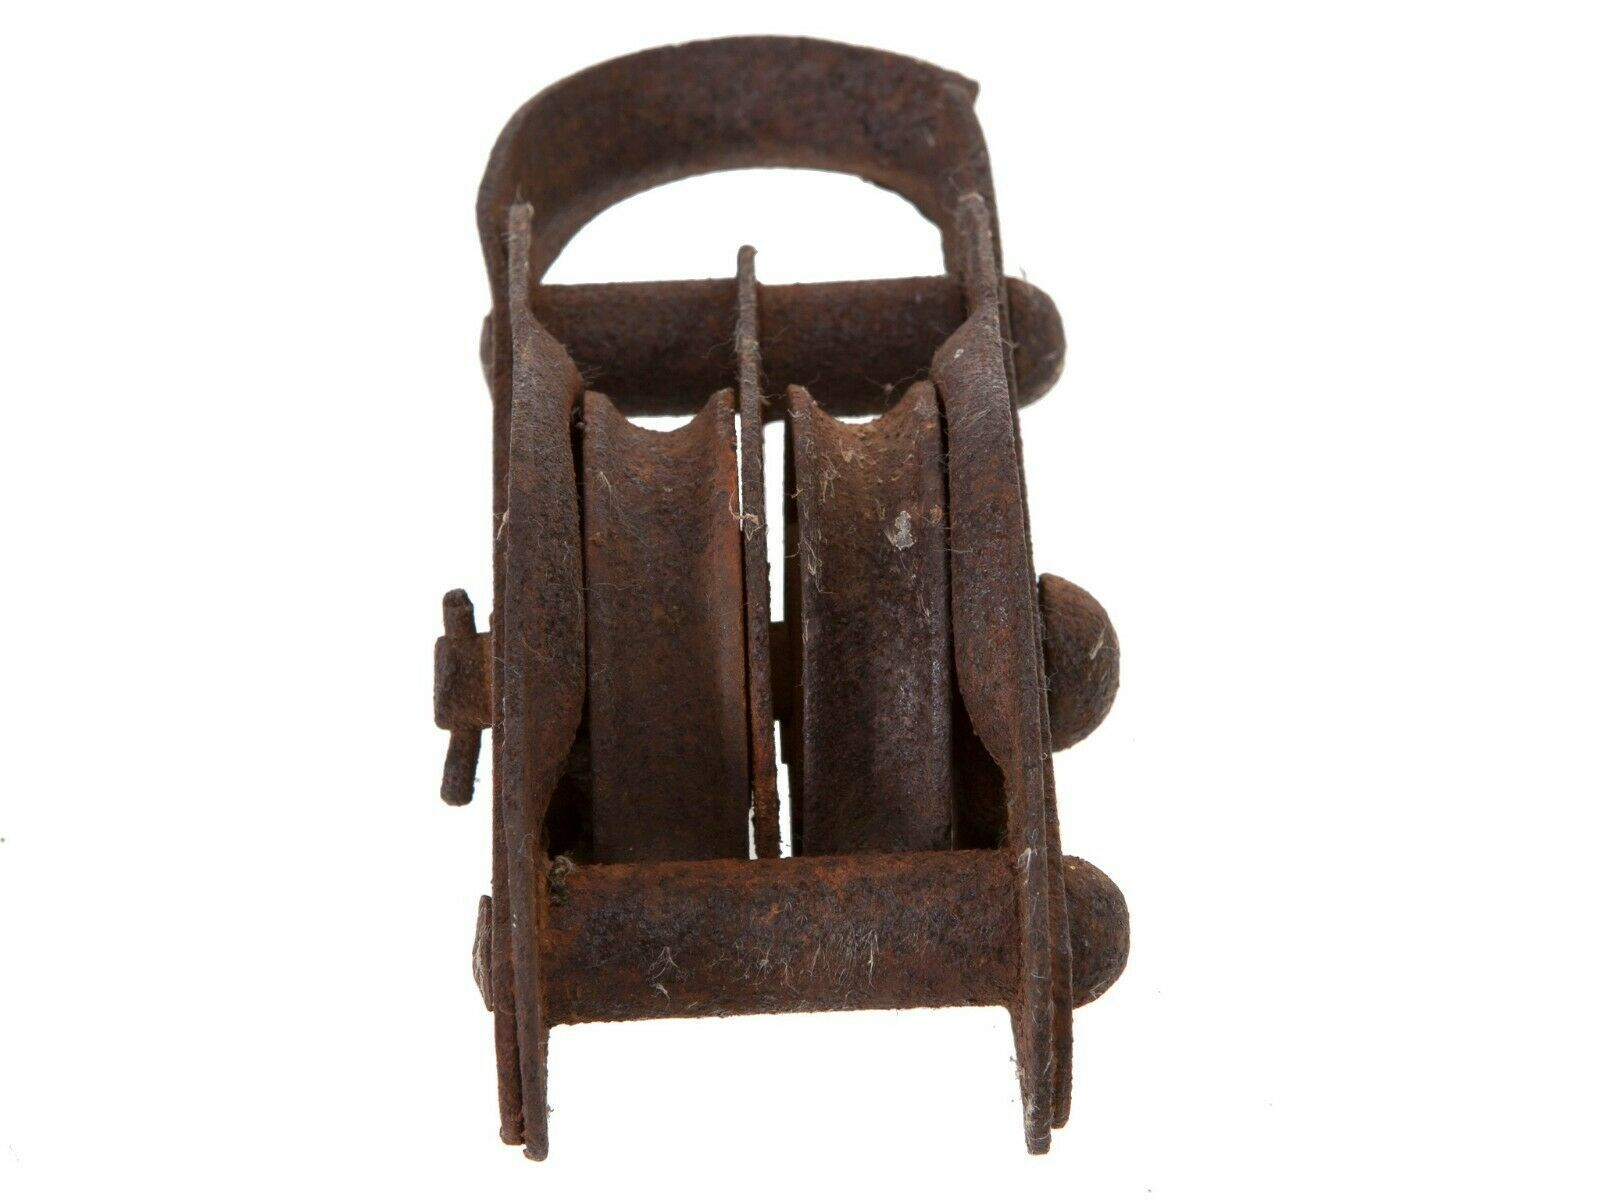 Primary image for FREE SHIP: Vintage Rusted Double Pulley